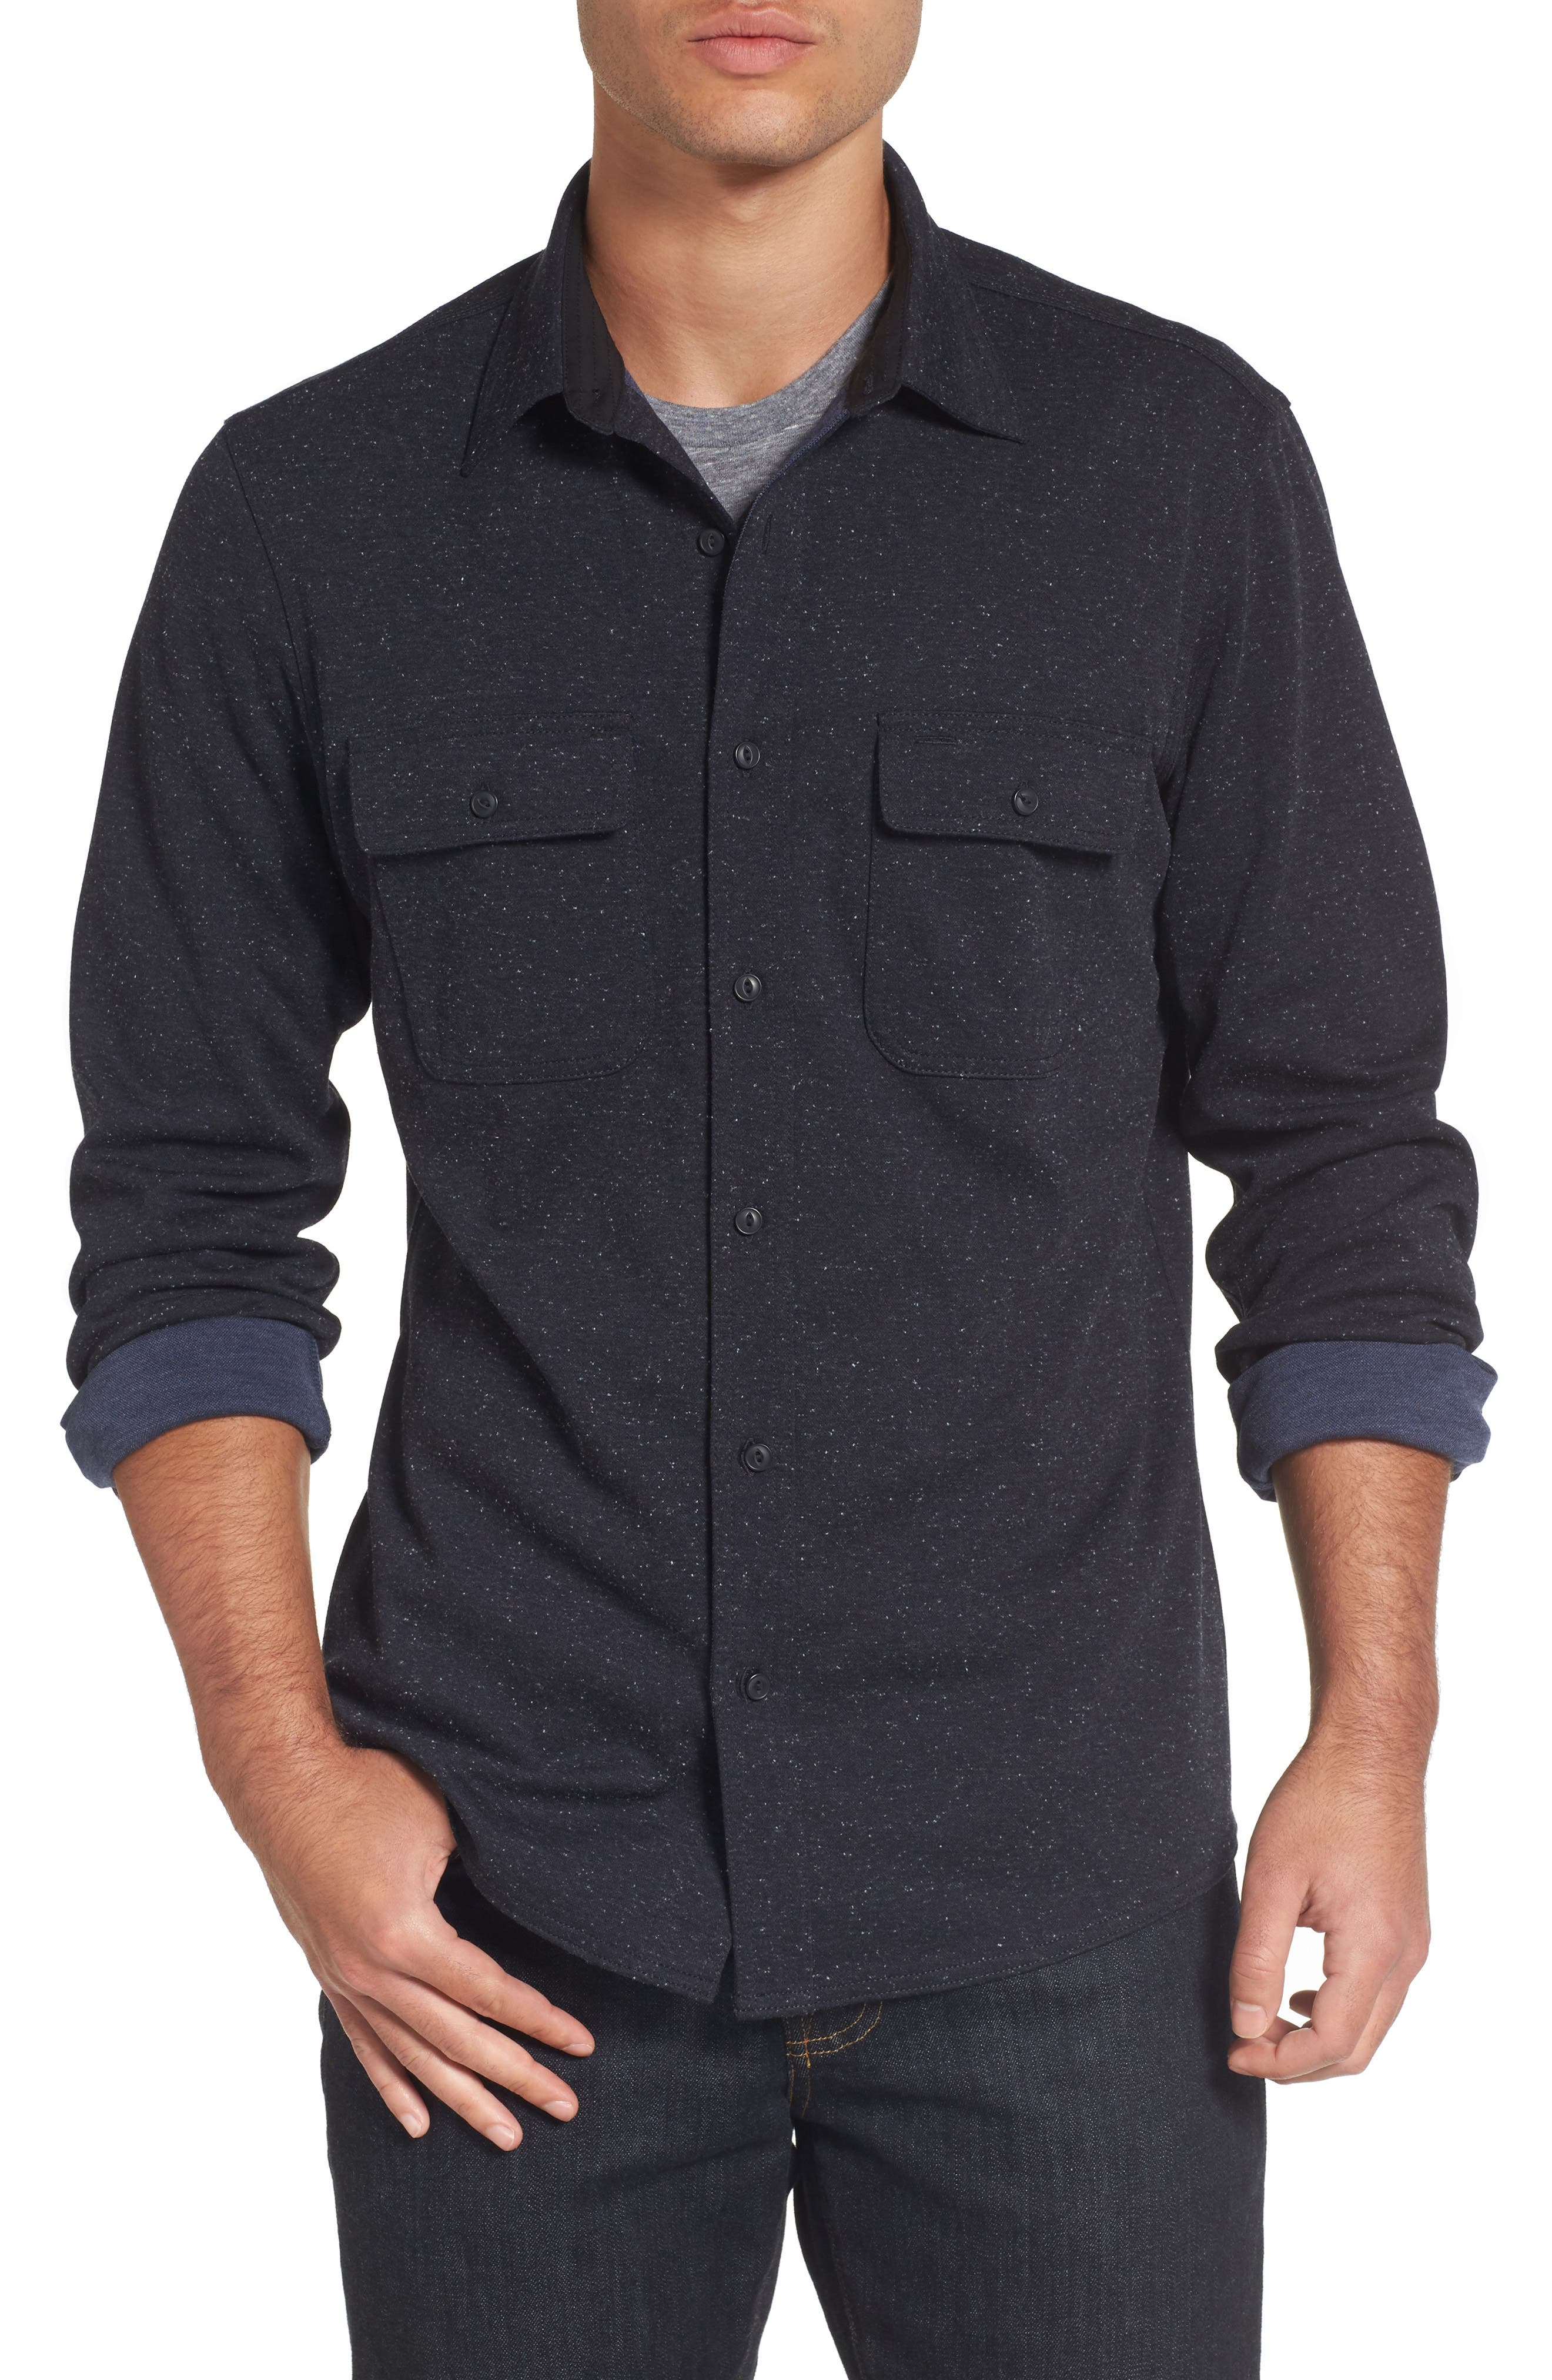 Alternate Image 1 Selected - Nordstrom Men's Shop Knit Sport Shirt